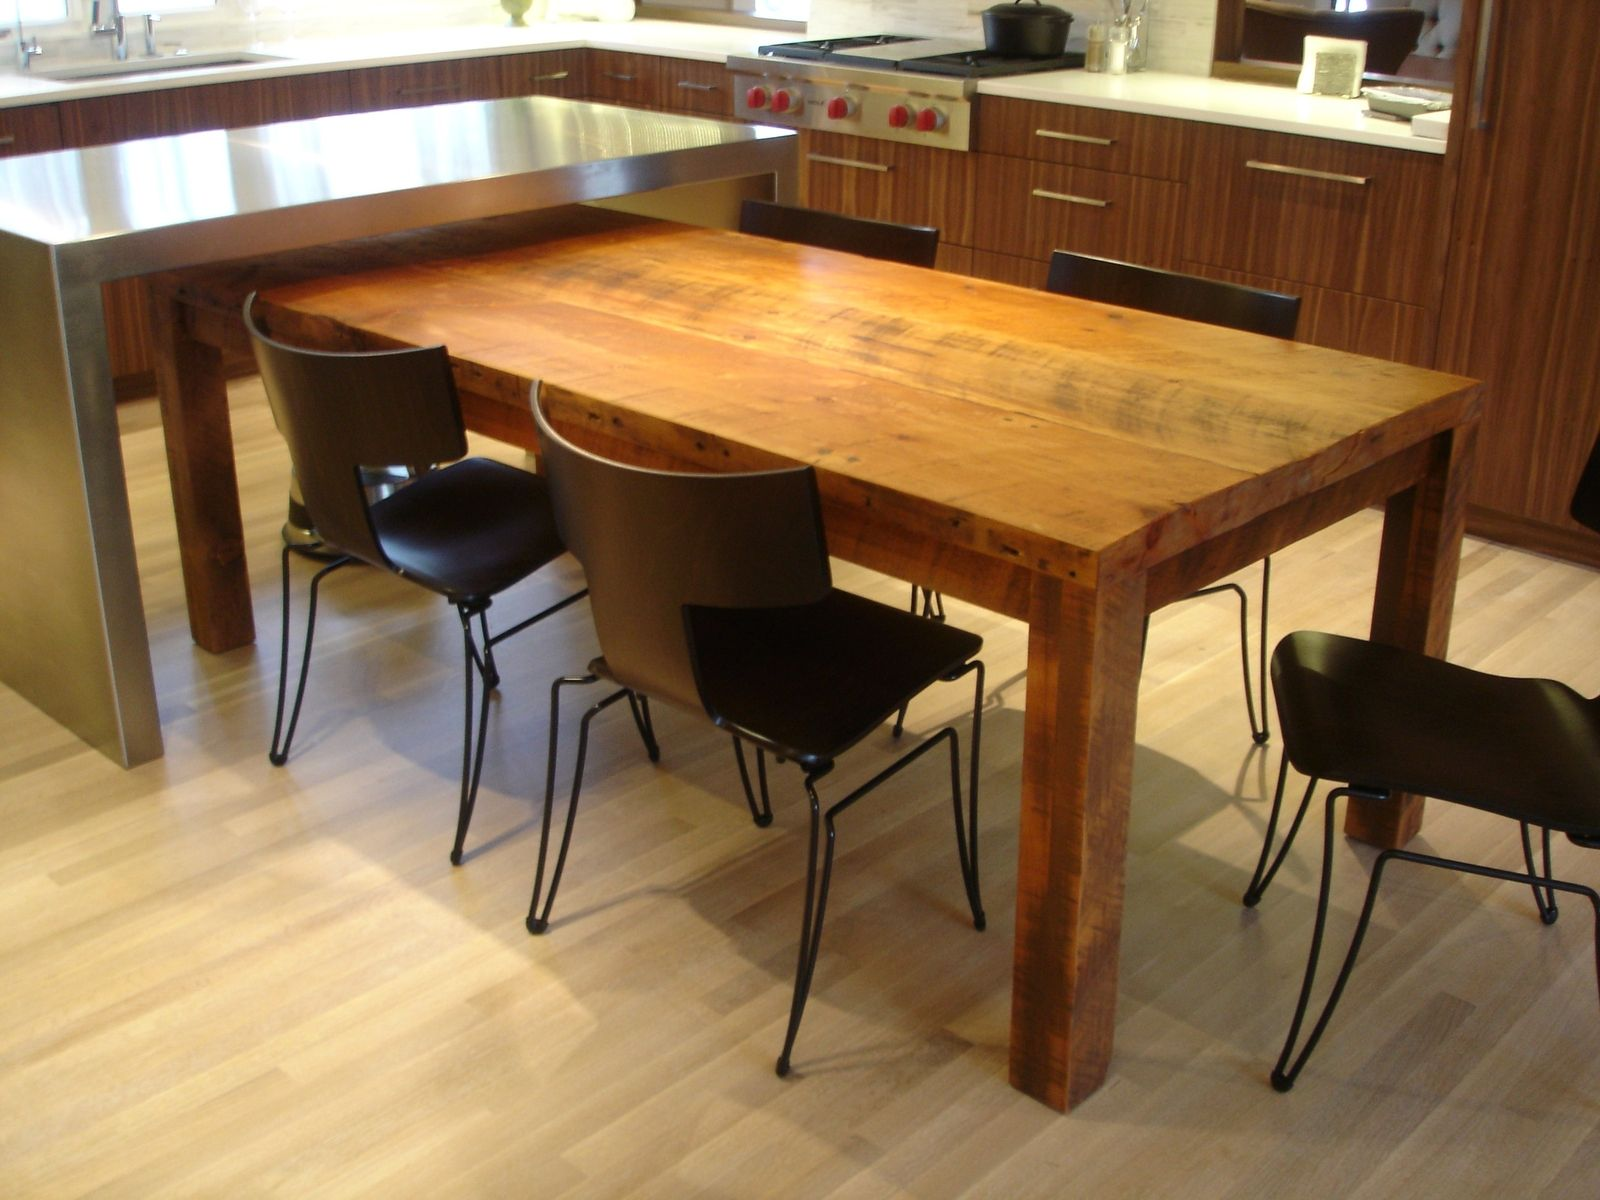 Diy Dining Table Ideas  Rustic Wood Rustic Dining Tables And Brilliant Custom Made Dining Room Tables Decorating Design